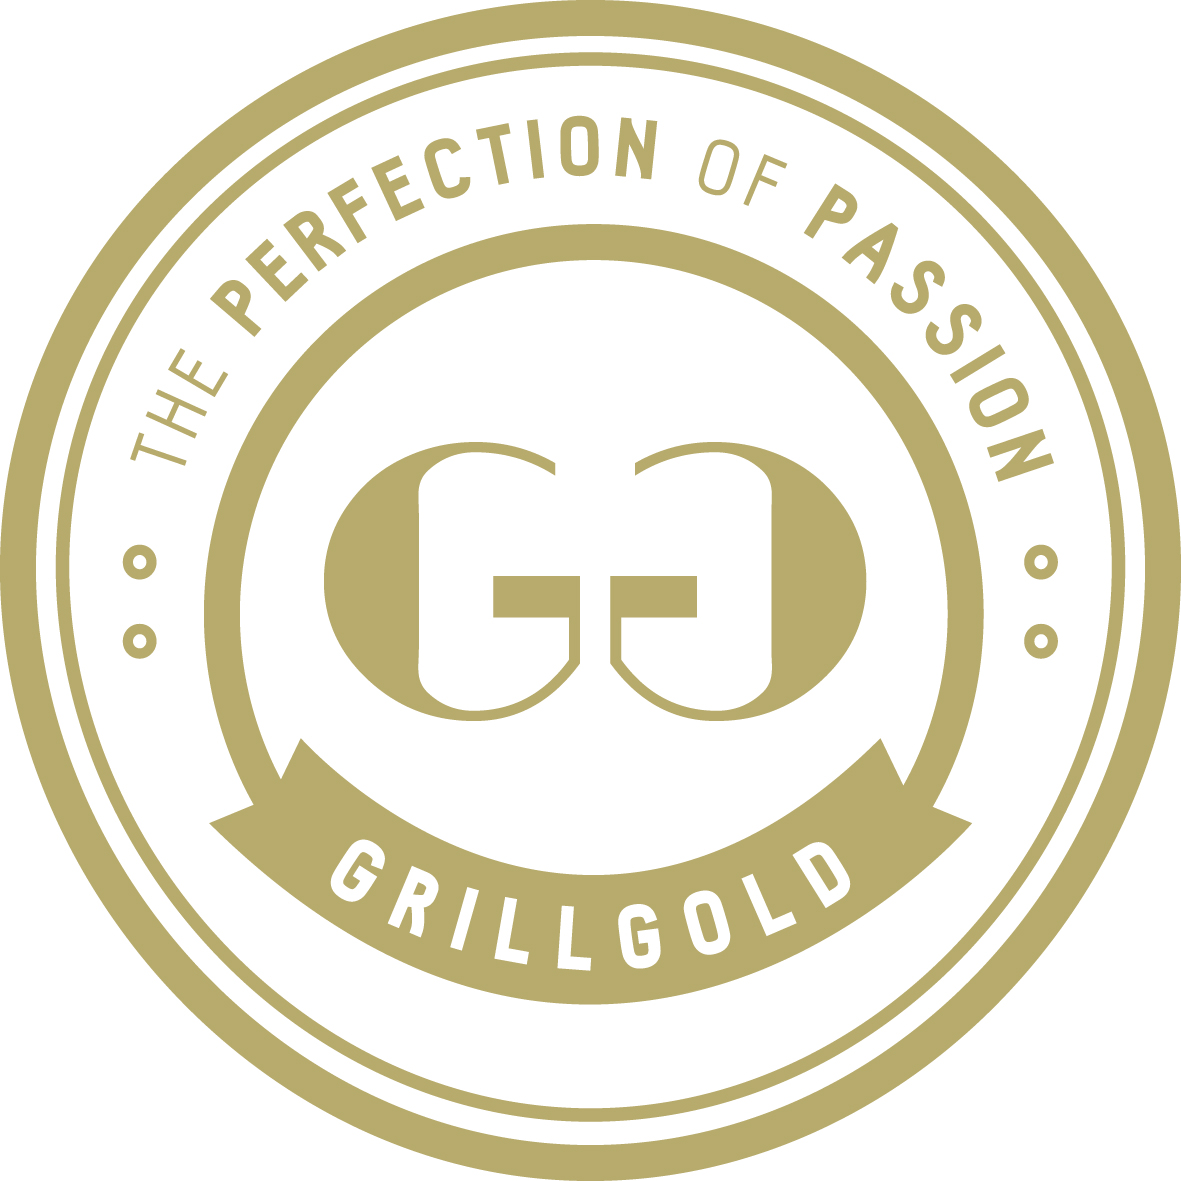 Grillgold